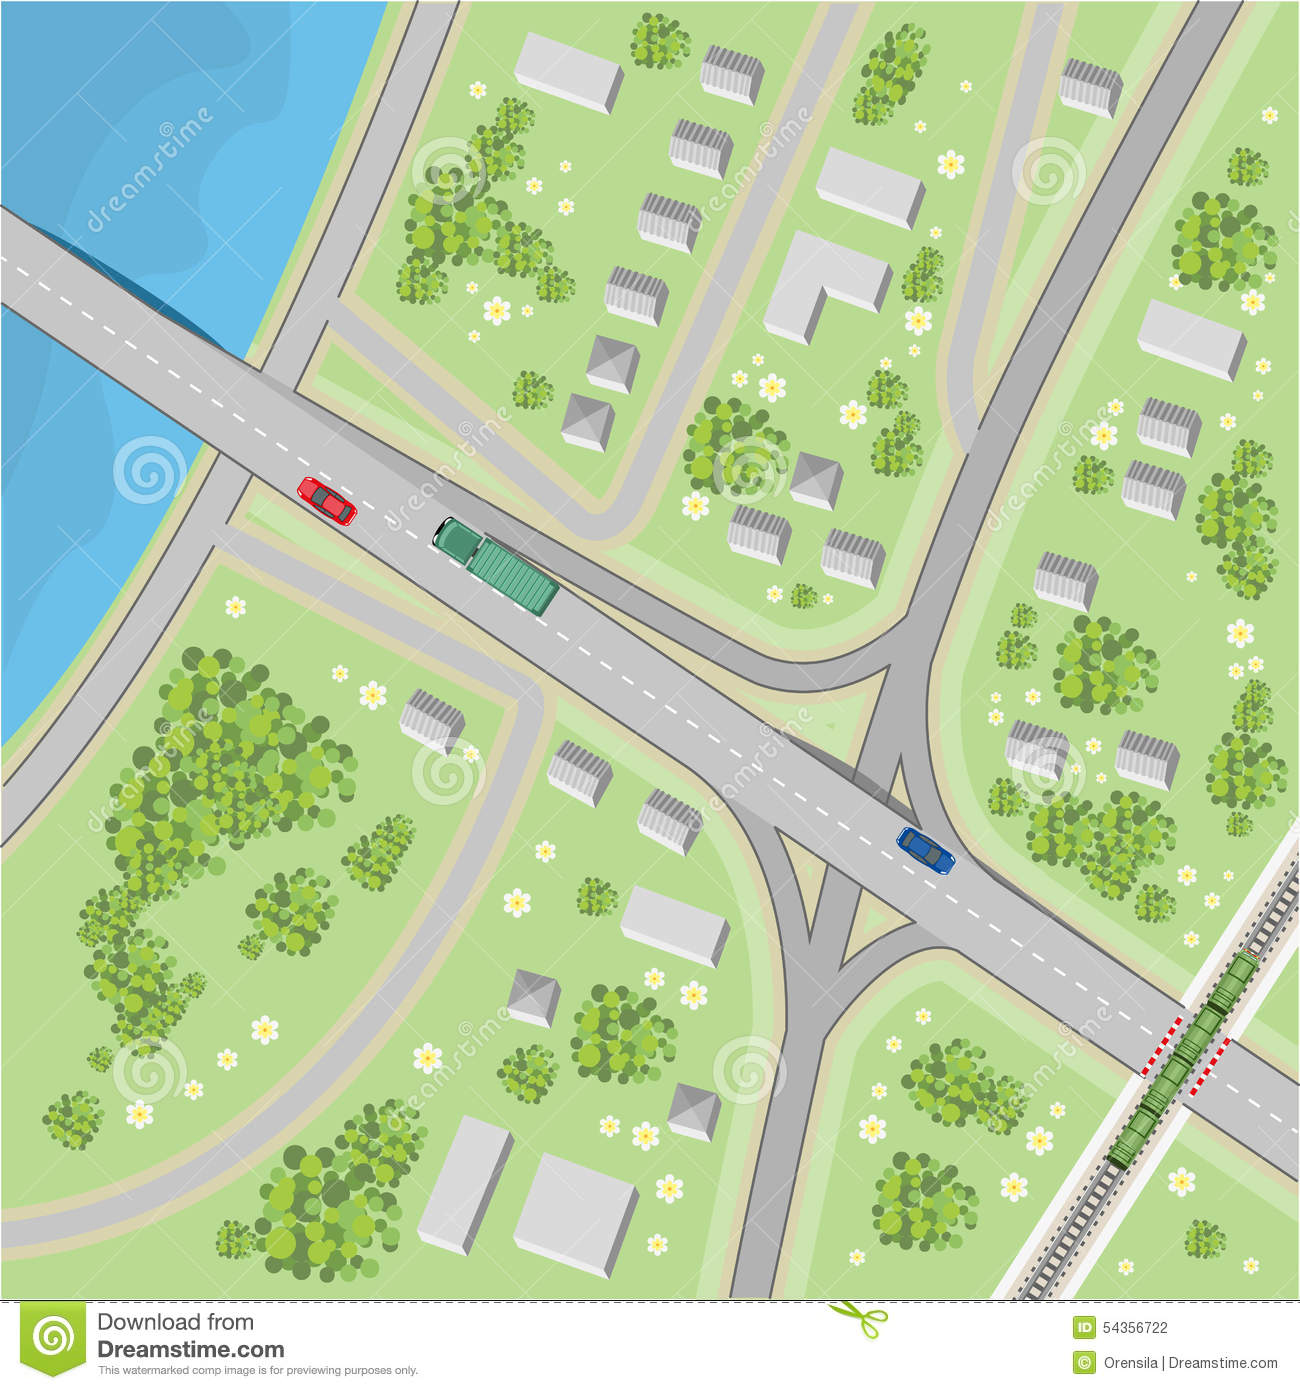 The Map With Driving Directions Top View Vector Image – Maps Directions Driving